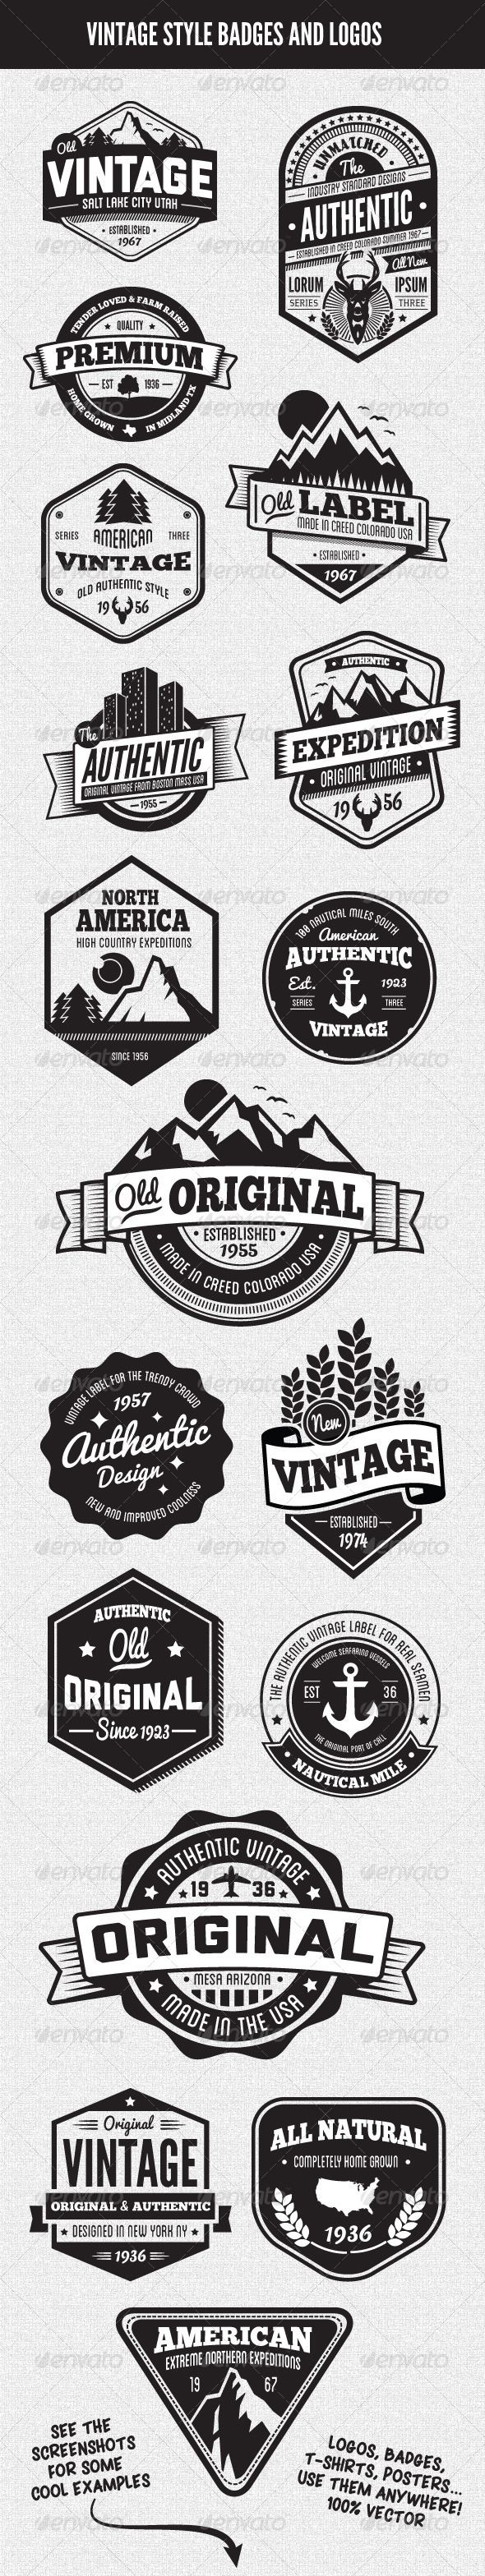 Vintage Style Badges and Logos Vol 3                                                                                                                                                                                 More